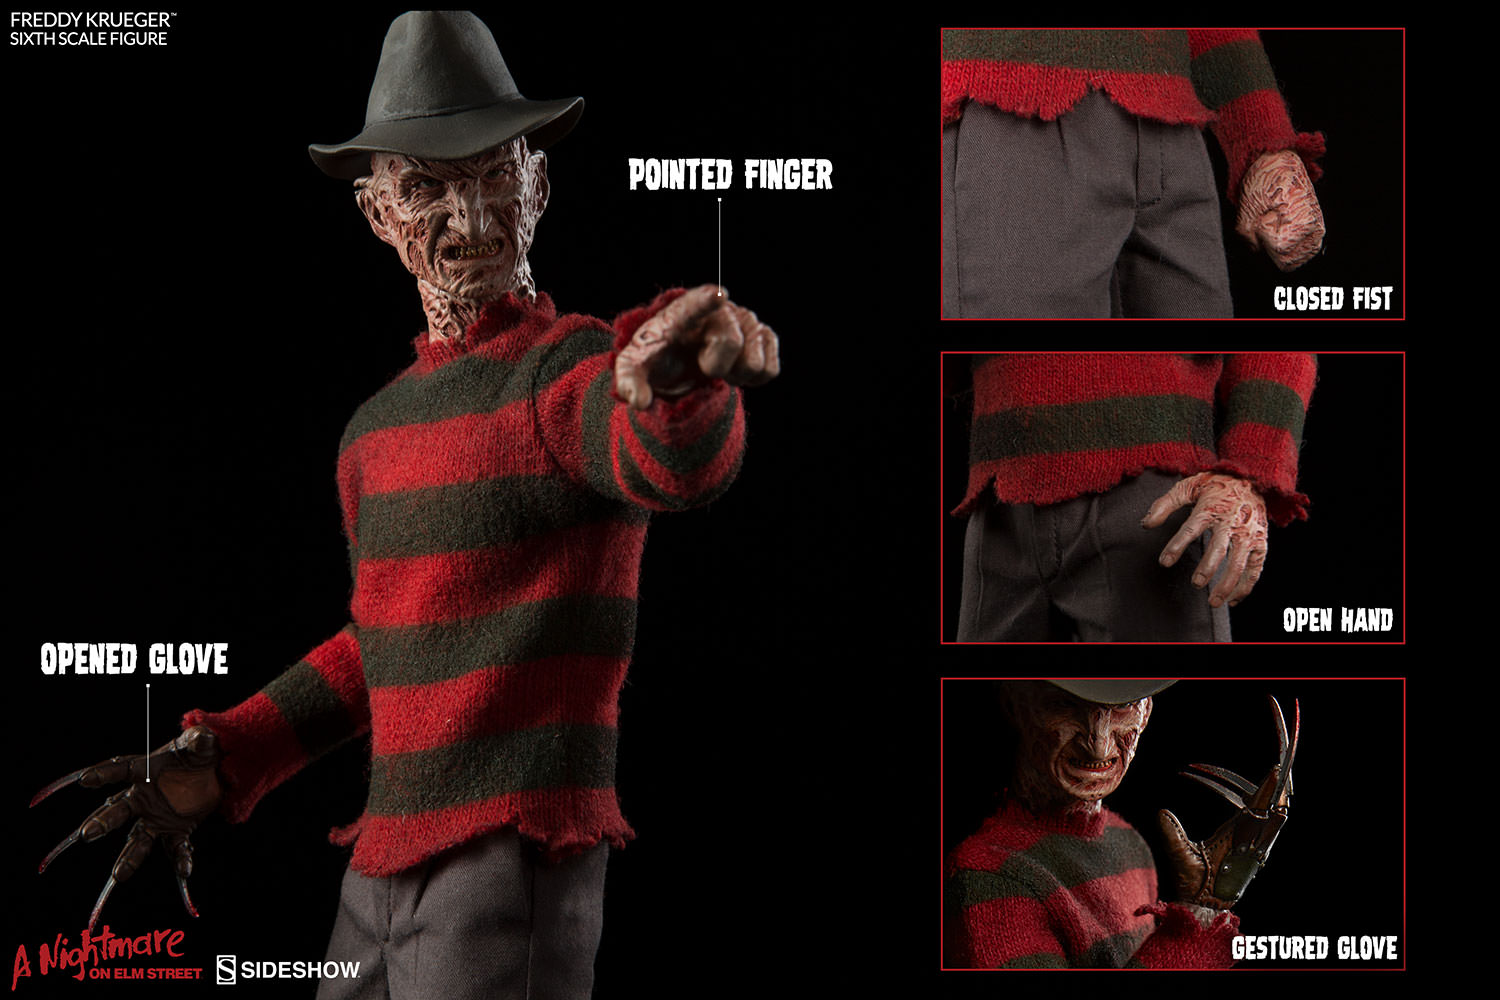 a-nightmare-on-elm-street-freddy-krueger-sixth-scale-100359-13